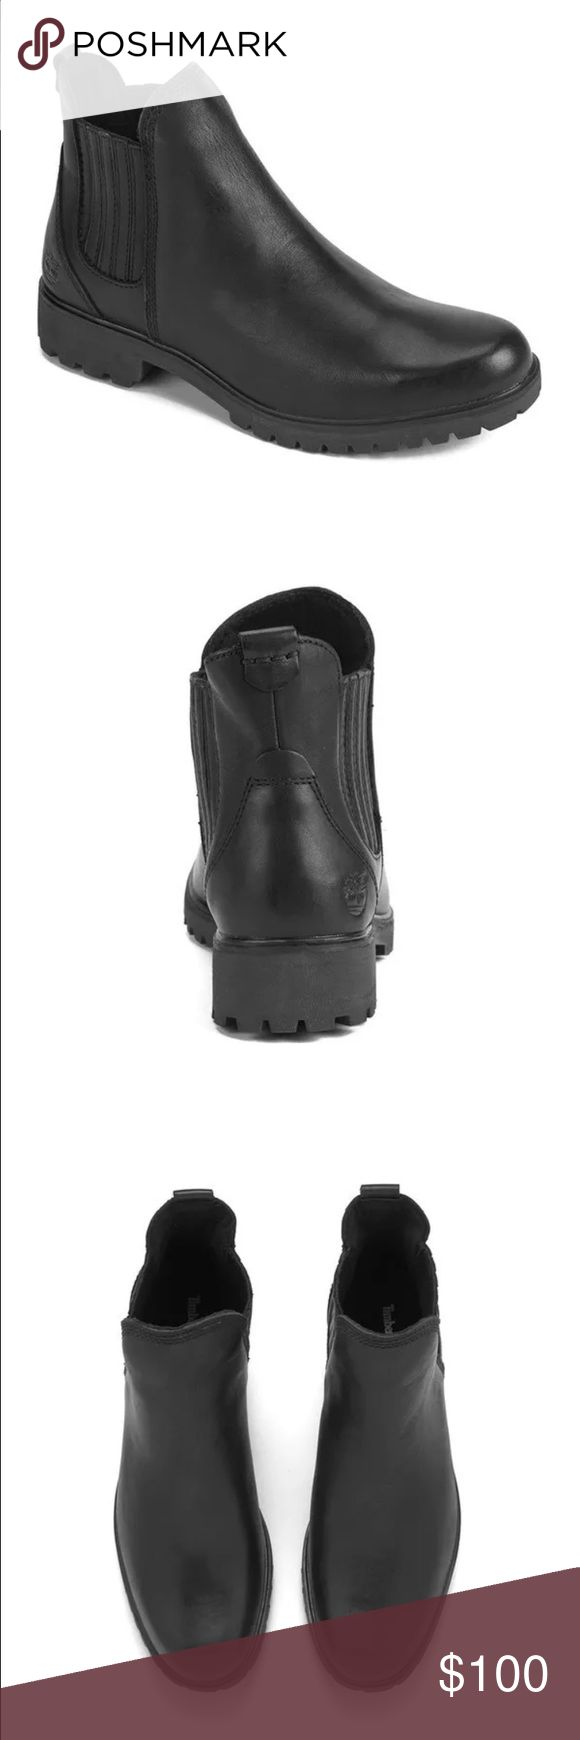 TIMBERLAND Lyonsdale Chelsea Boot, Black Leather Size: US 7 Women's; excellent, almost brand new condition Leather Chelsea boots! Timberland is known for being sturdy, tough, reliable for walking. Rubber gore sole, genuine leather upper! Worn once or twice, but my feet are wide so they're not for me! Please send me reasonable offers :) only slight creasing around the toe cap from wearing a few times. Can be fixed with Leather care products! Timberland Shoes Ankle Boots & Booties